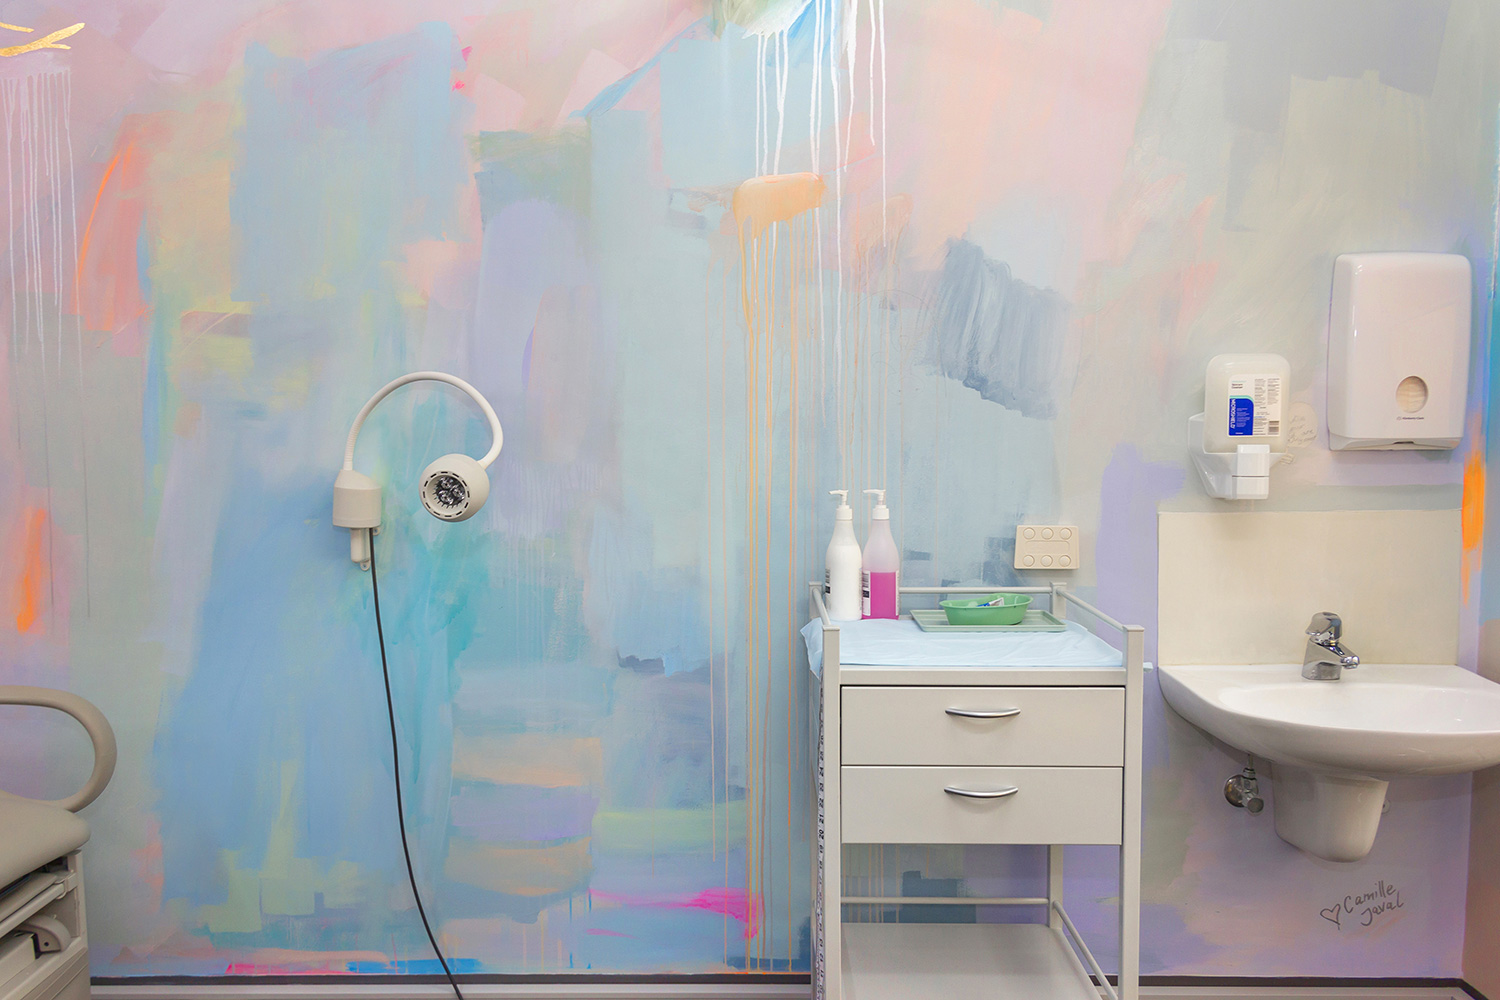 Pastel abstract mural painted in an OB/GYN office, featuring medical equipment and styled furniture.